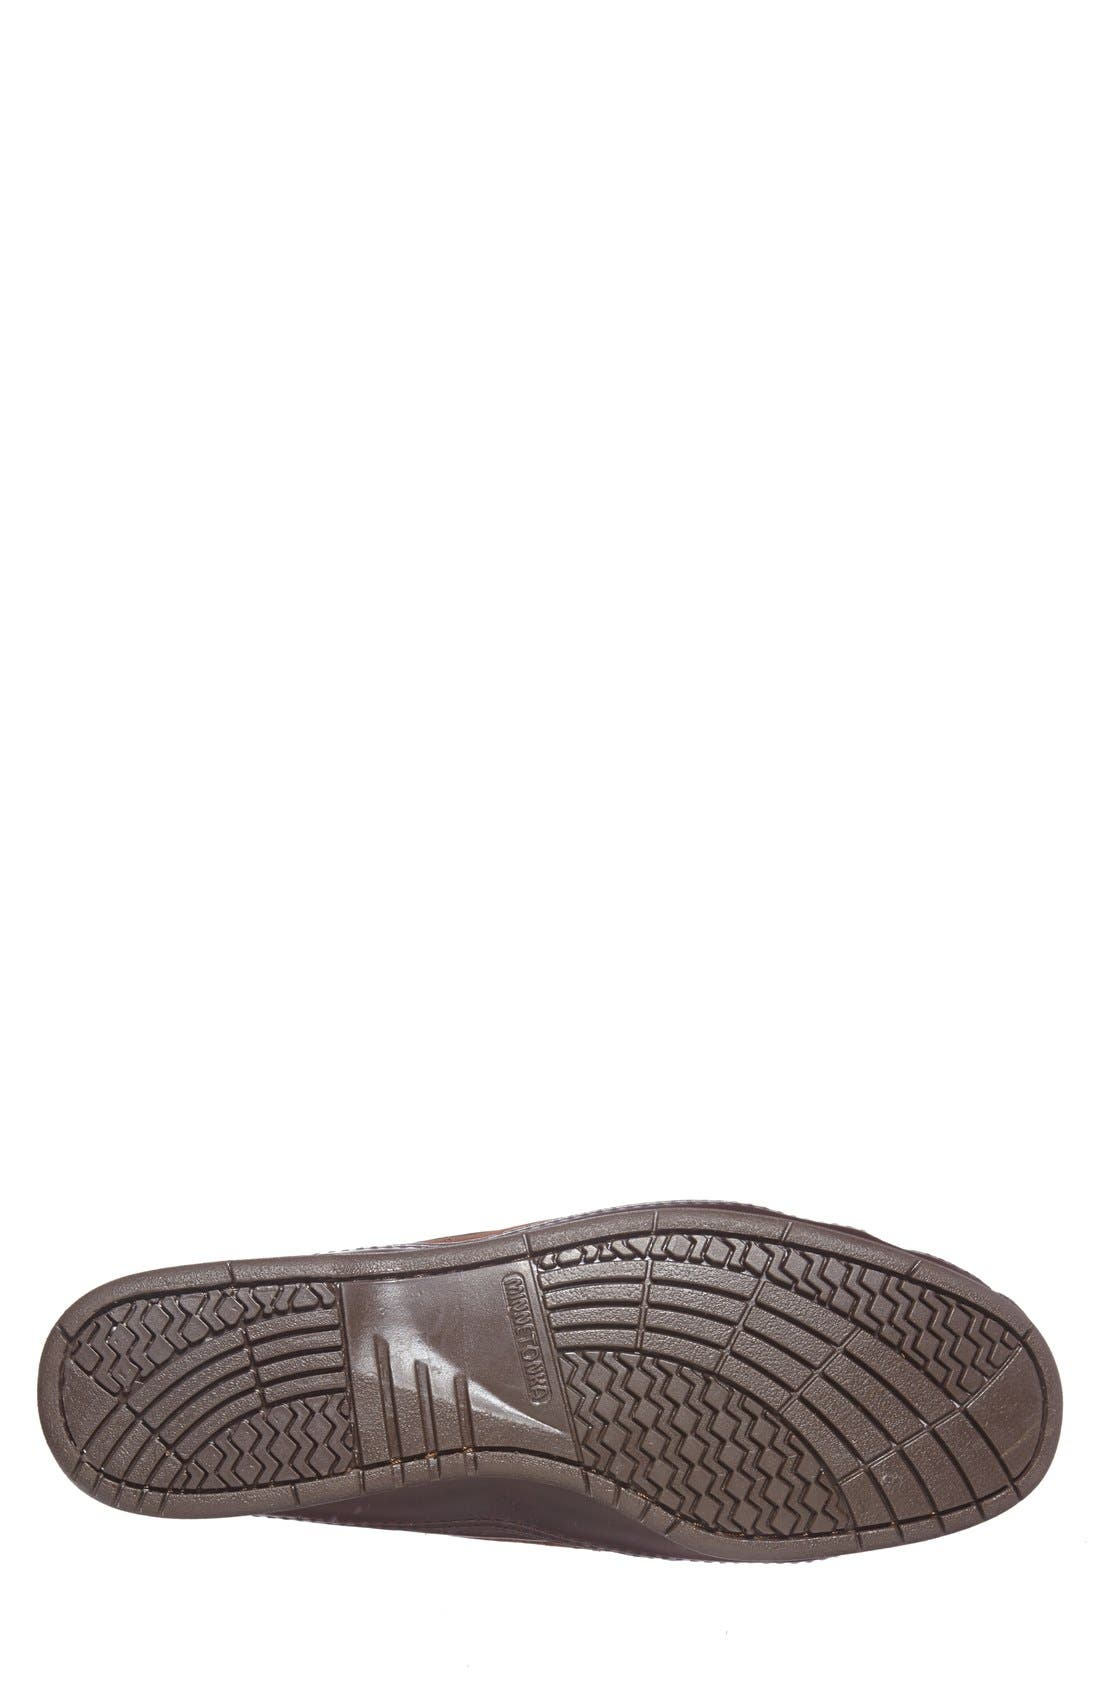 Double Sole Moccasin,                             Alternate thumbnail 4, color,                             BROWN